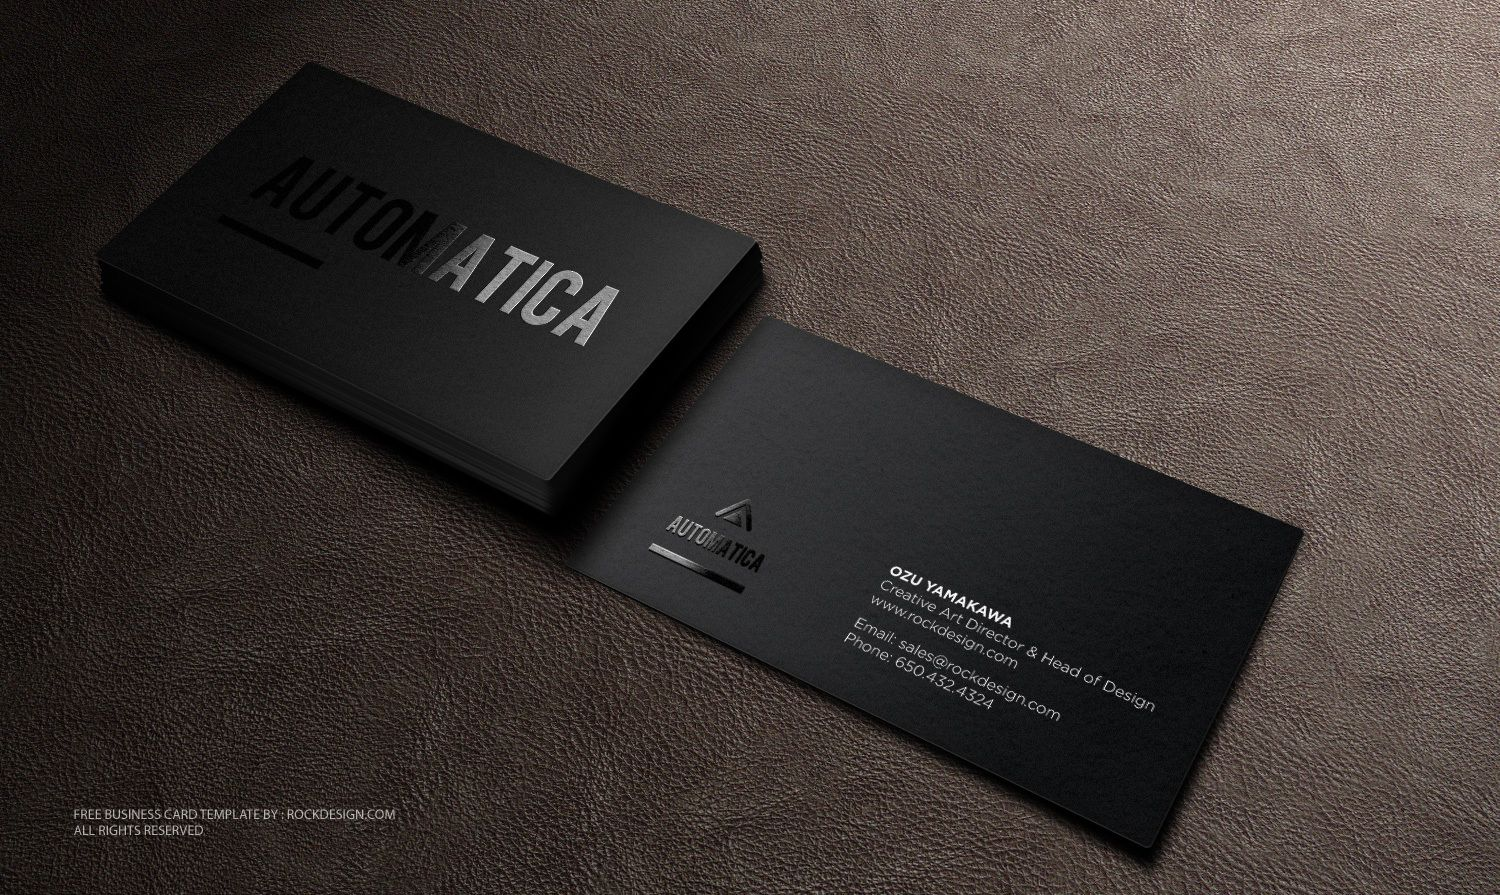 Black Business Card Template Download Free Design Templates - Business card design templates free